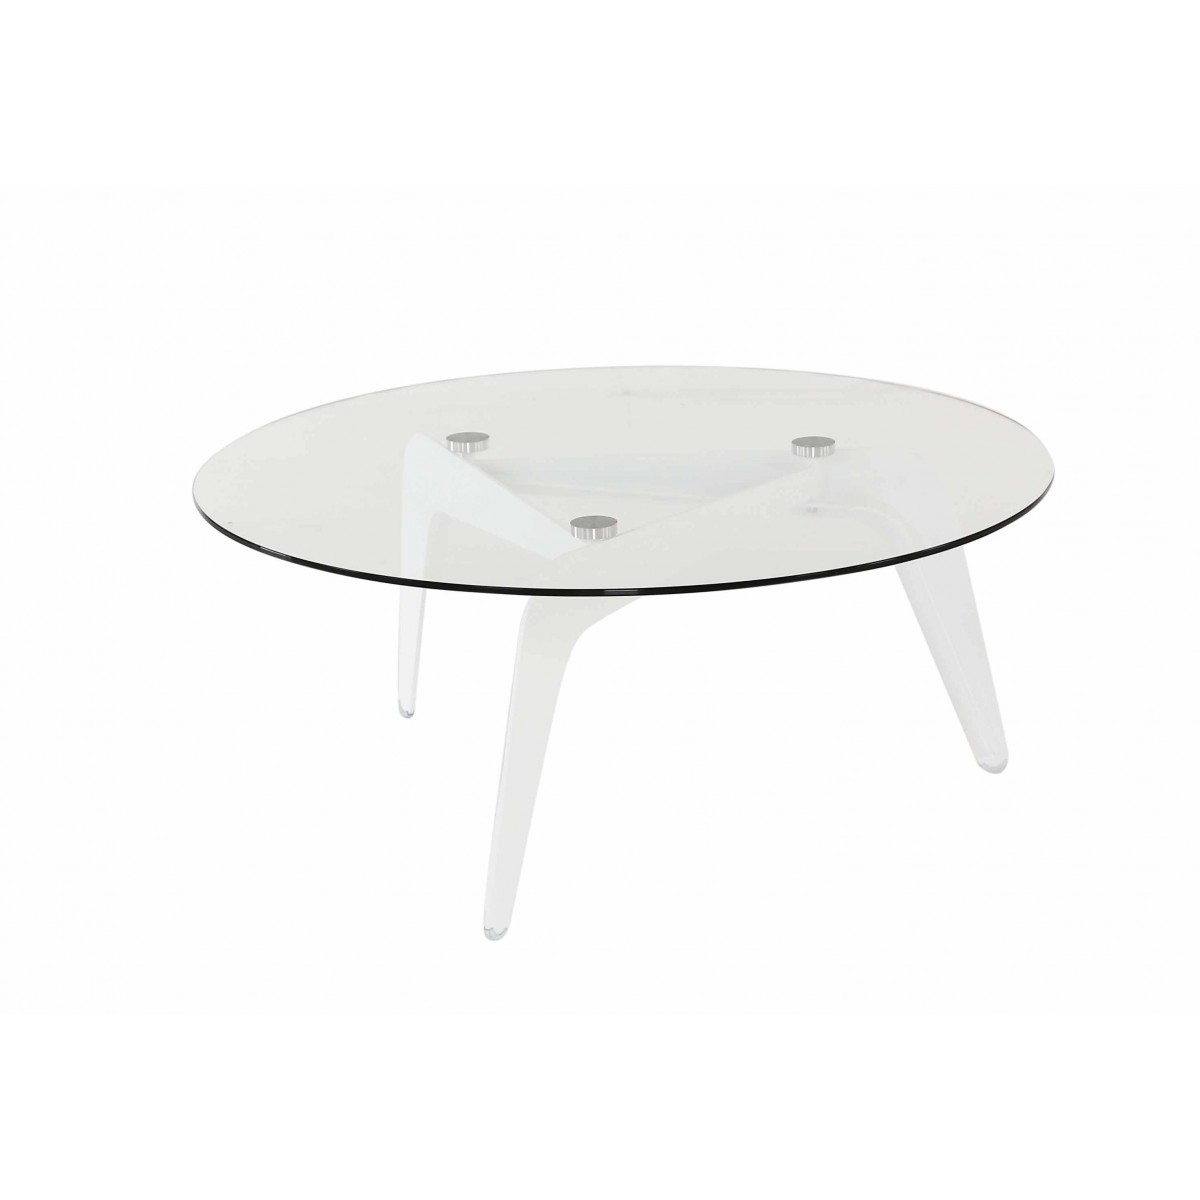 Table basse ronde verre et metal table de lit - Table basse ronde verre ...